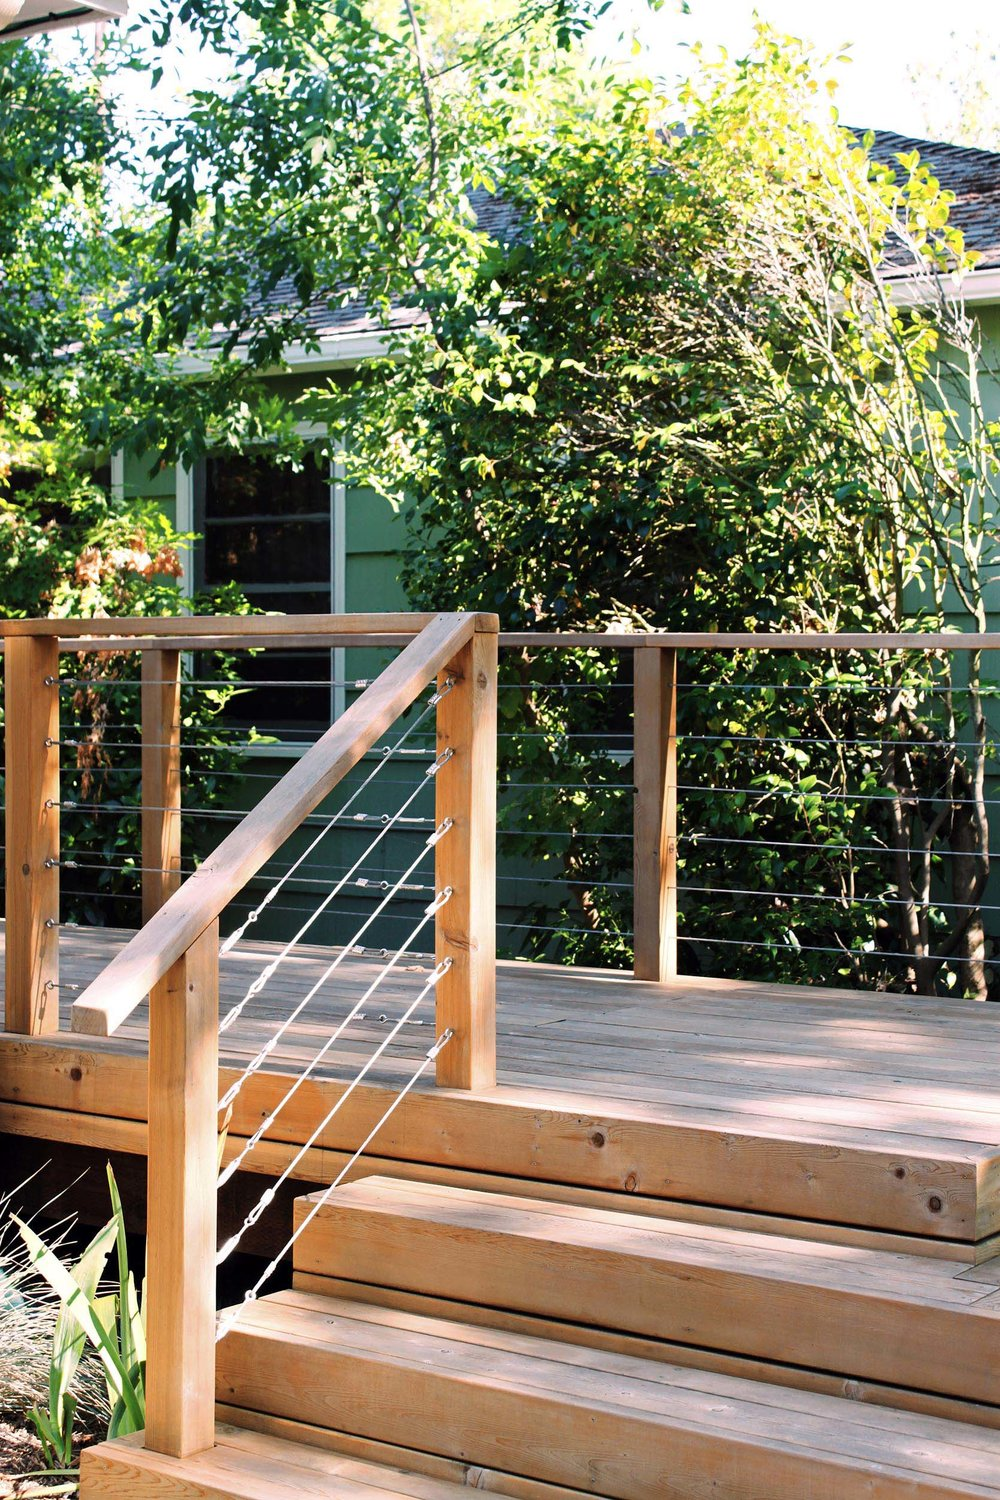 Cedar Deck + Stairs + Modern + Simple + Tensions Cable Railing